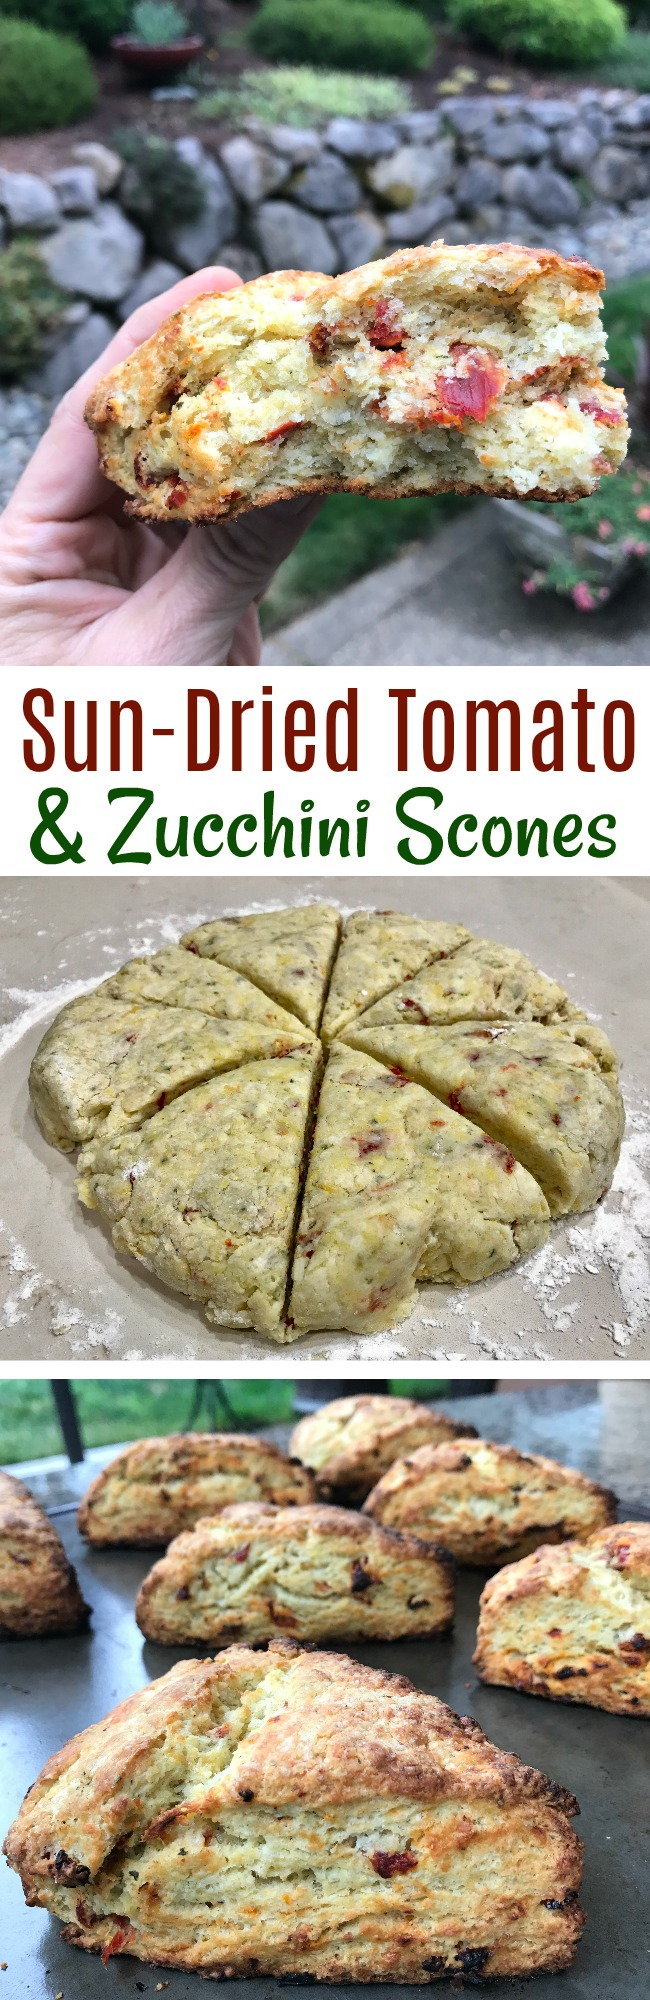 Sun-Dried Tomato and Zucchini Scones